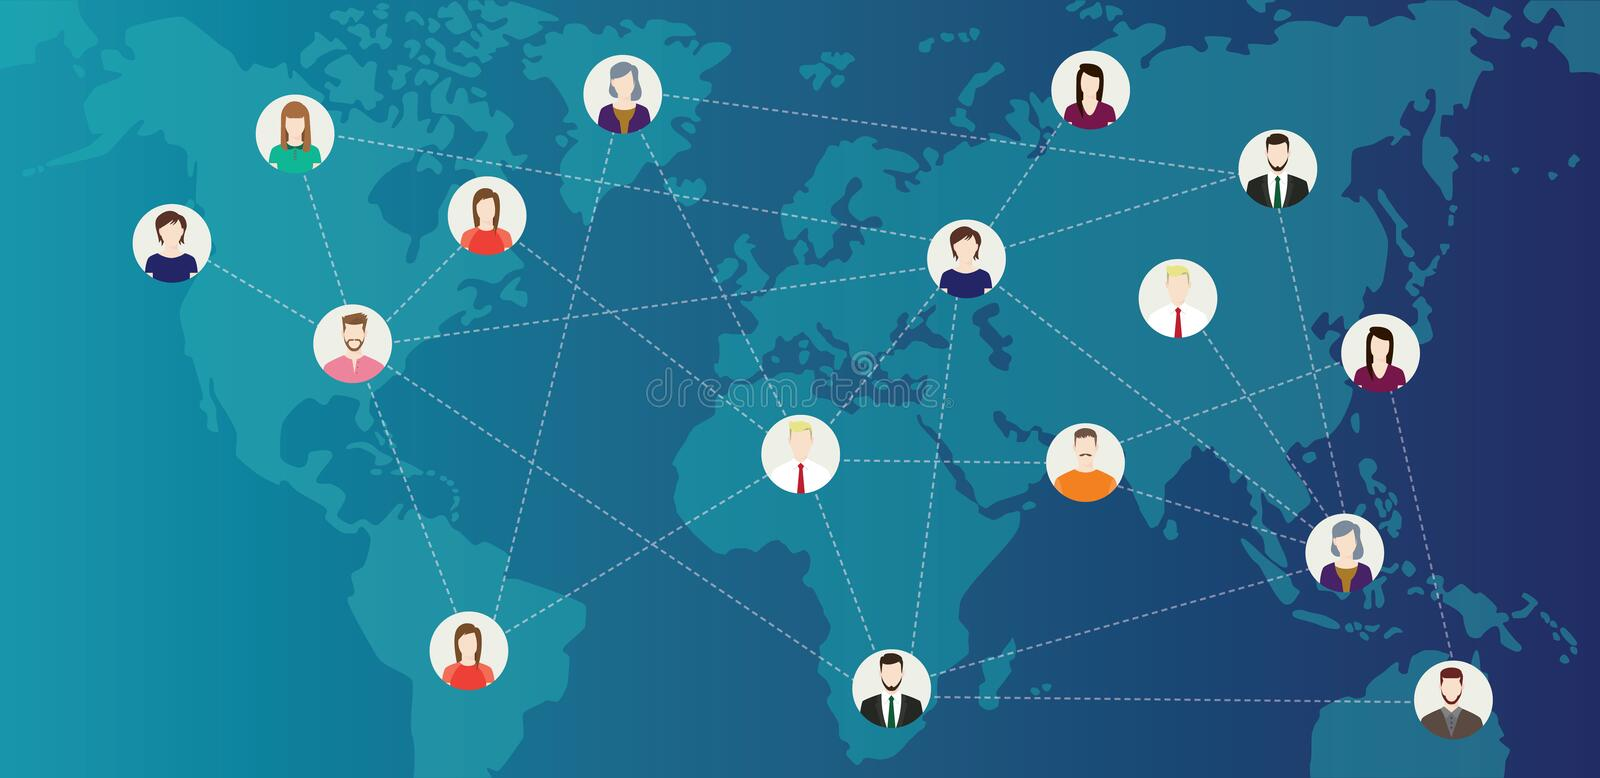 Social media world connected people with line connecting around the world on top of world maps - vector stock illustration